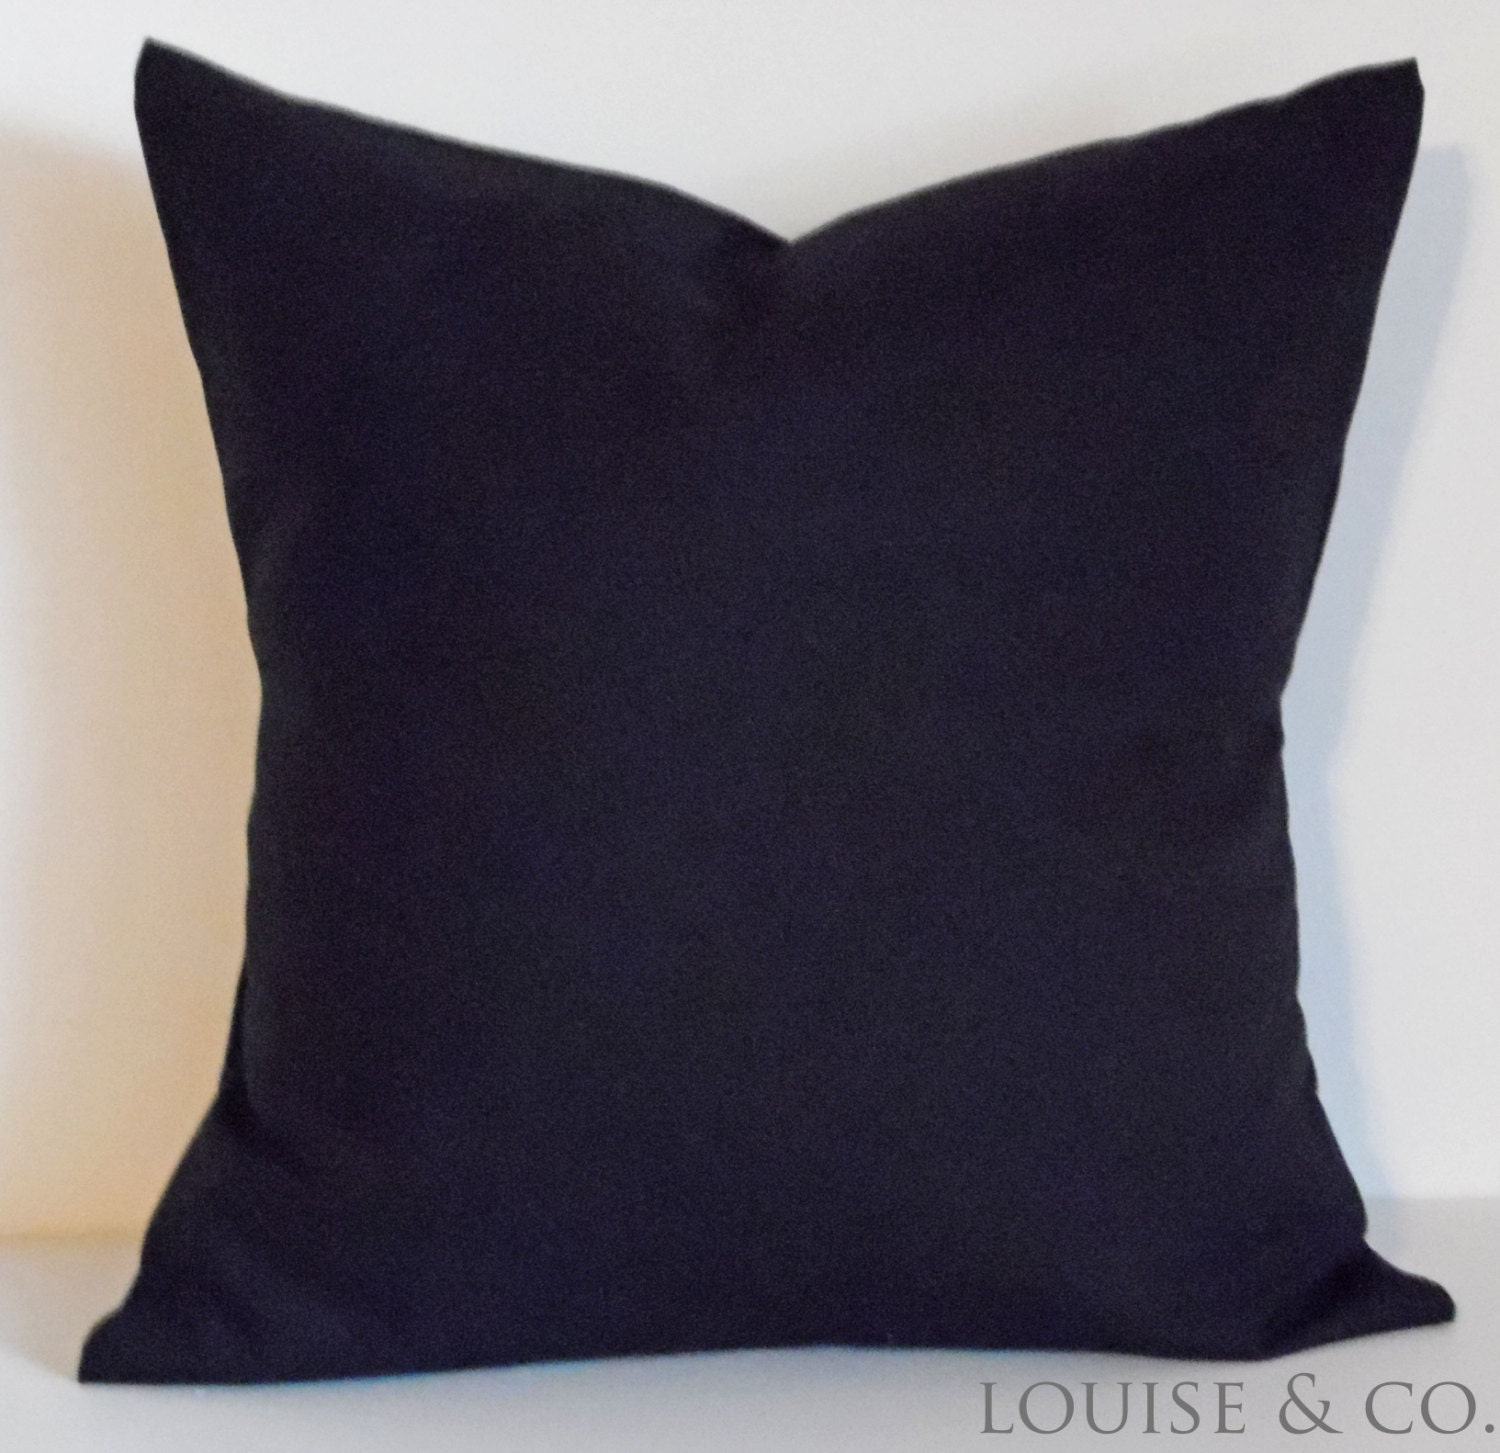 Plain Black Throw Pillow : Pillows Throw Pillow Solid Black 18x18 Accent by LouiseandCompany